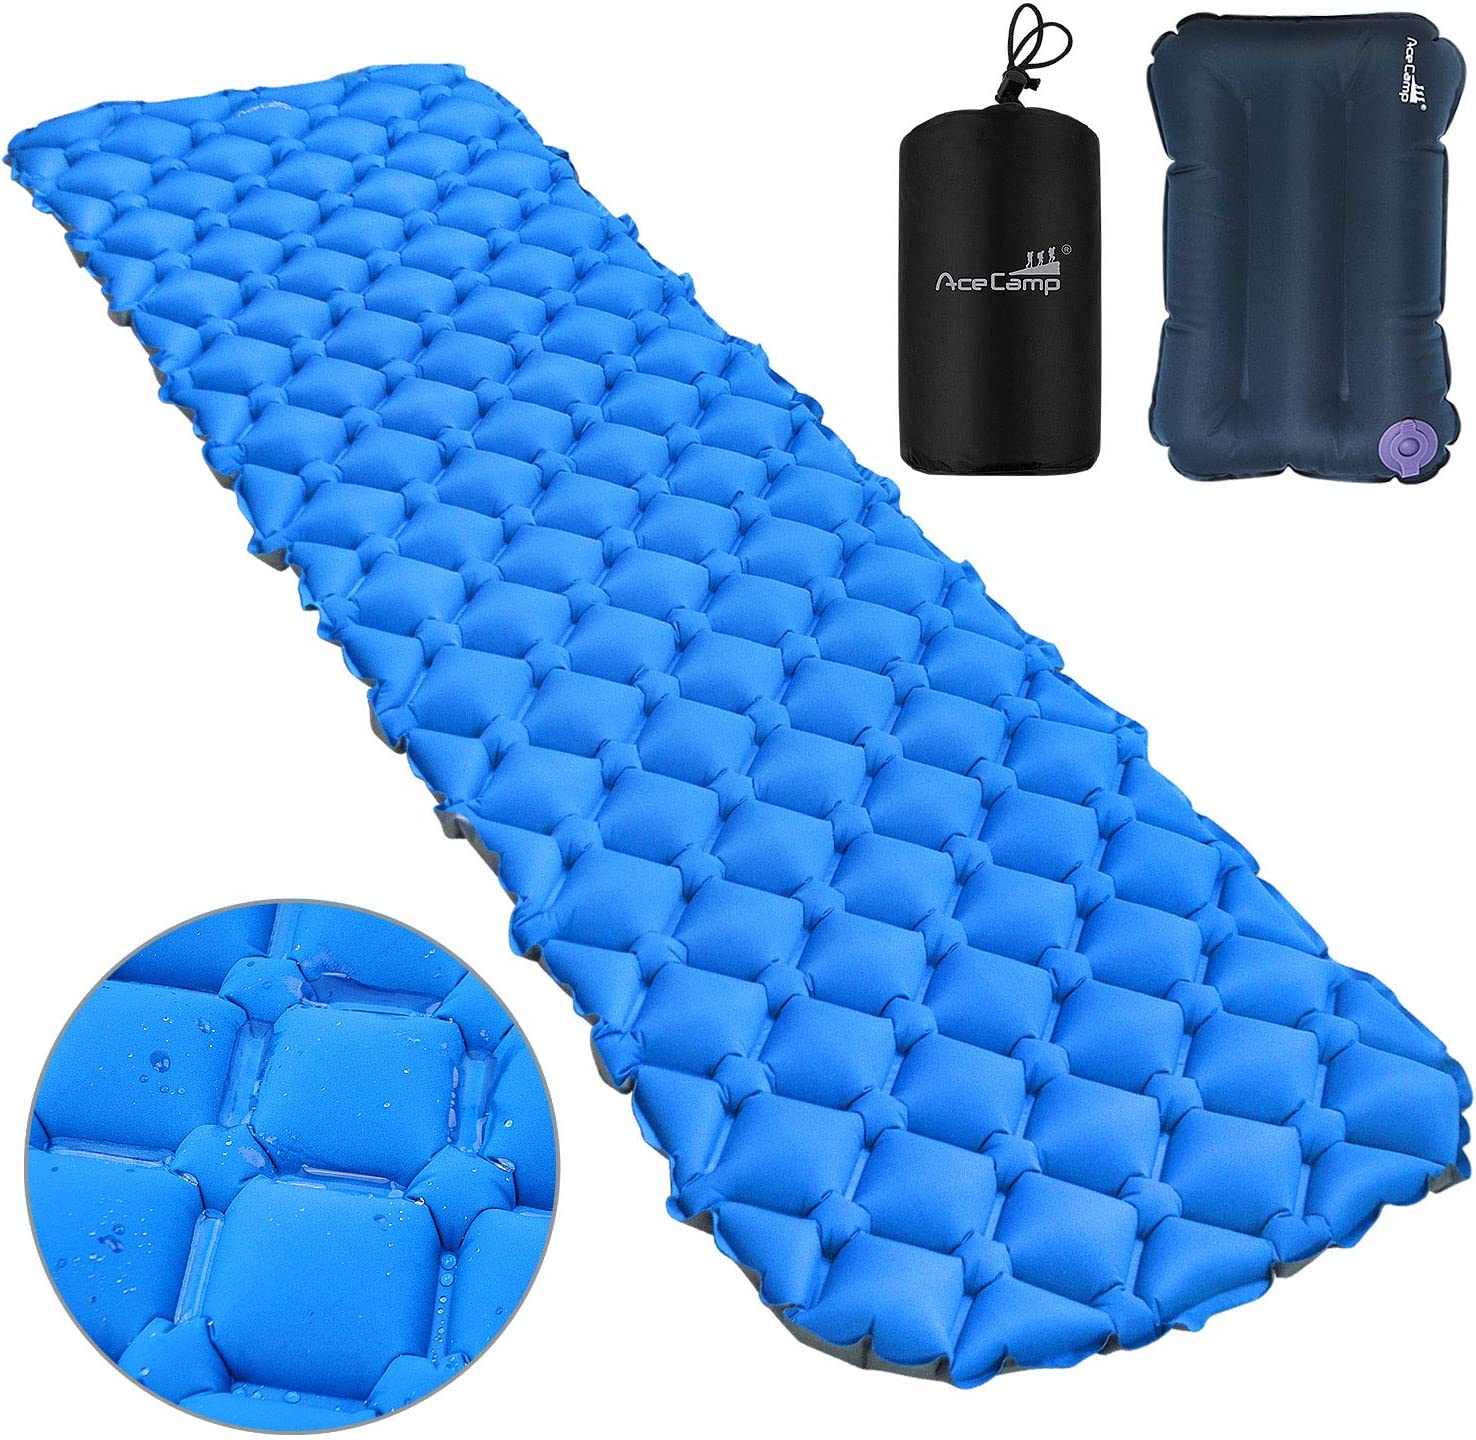 Max 75% OFF AceCamp 2 in 1 Sleeping Ultralight Camping Pad Infl Max 48% OFF